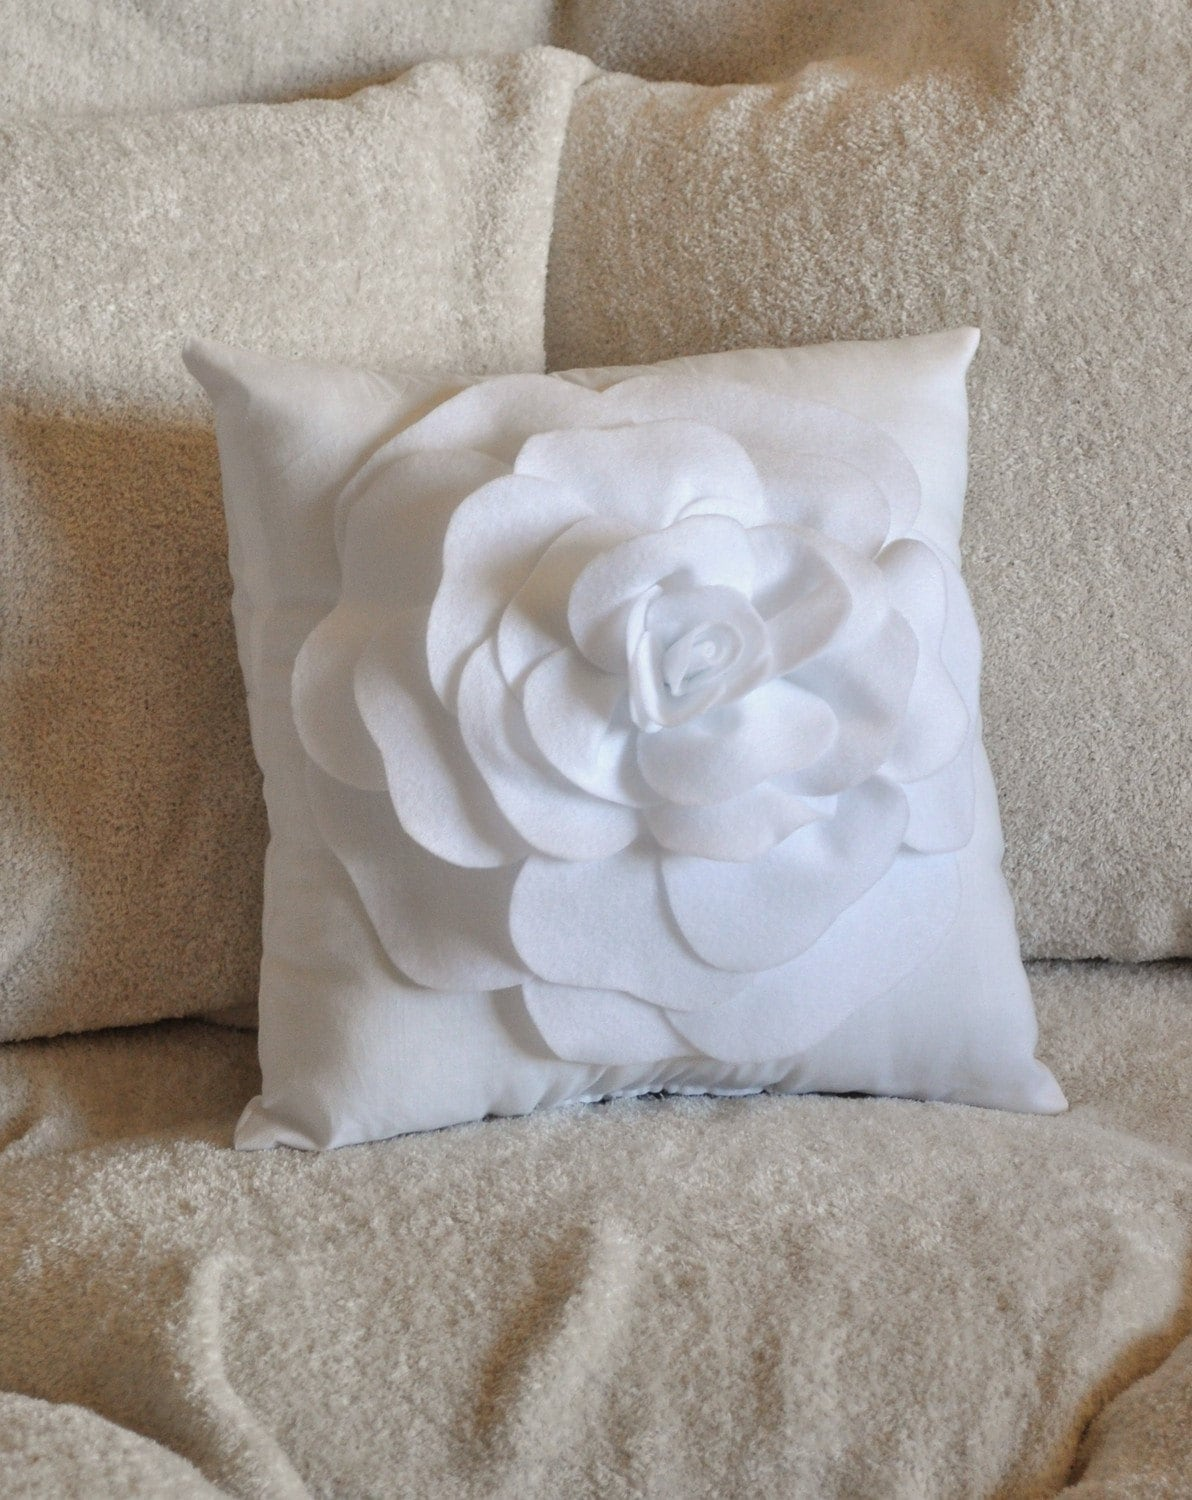 White Cotton Decorative Pillows For Bed